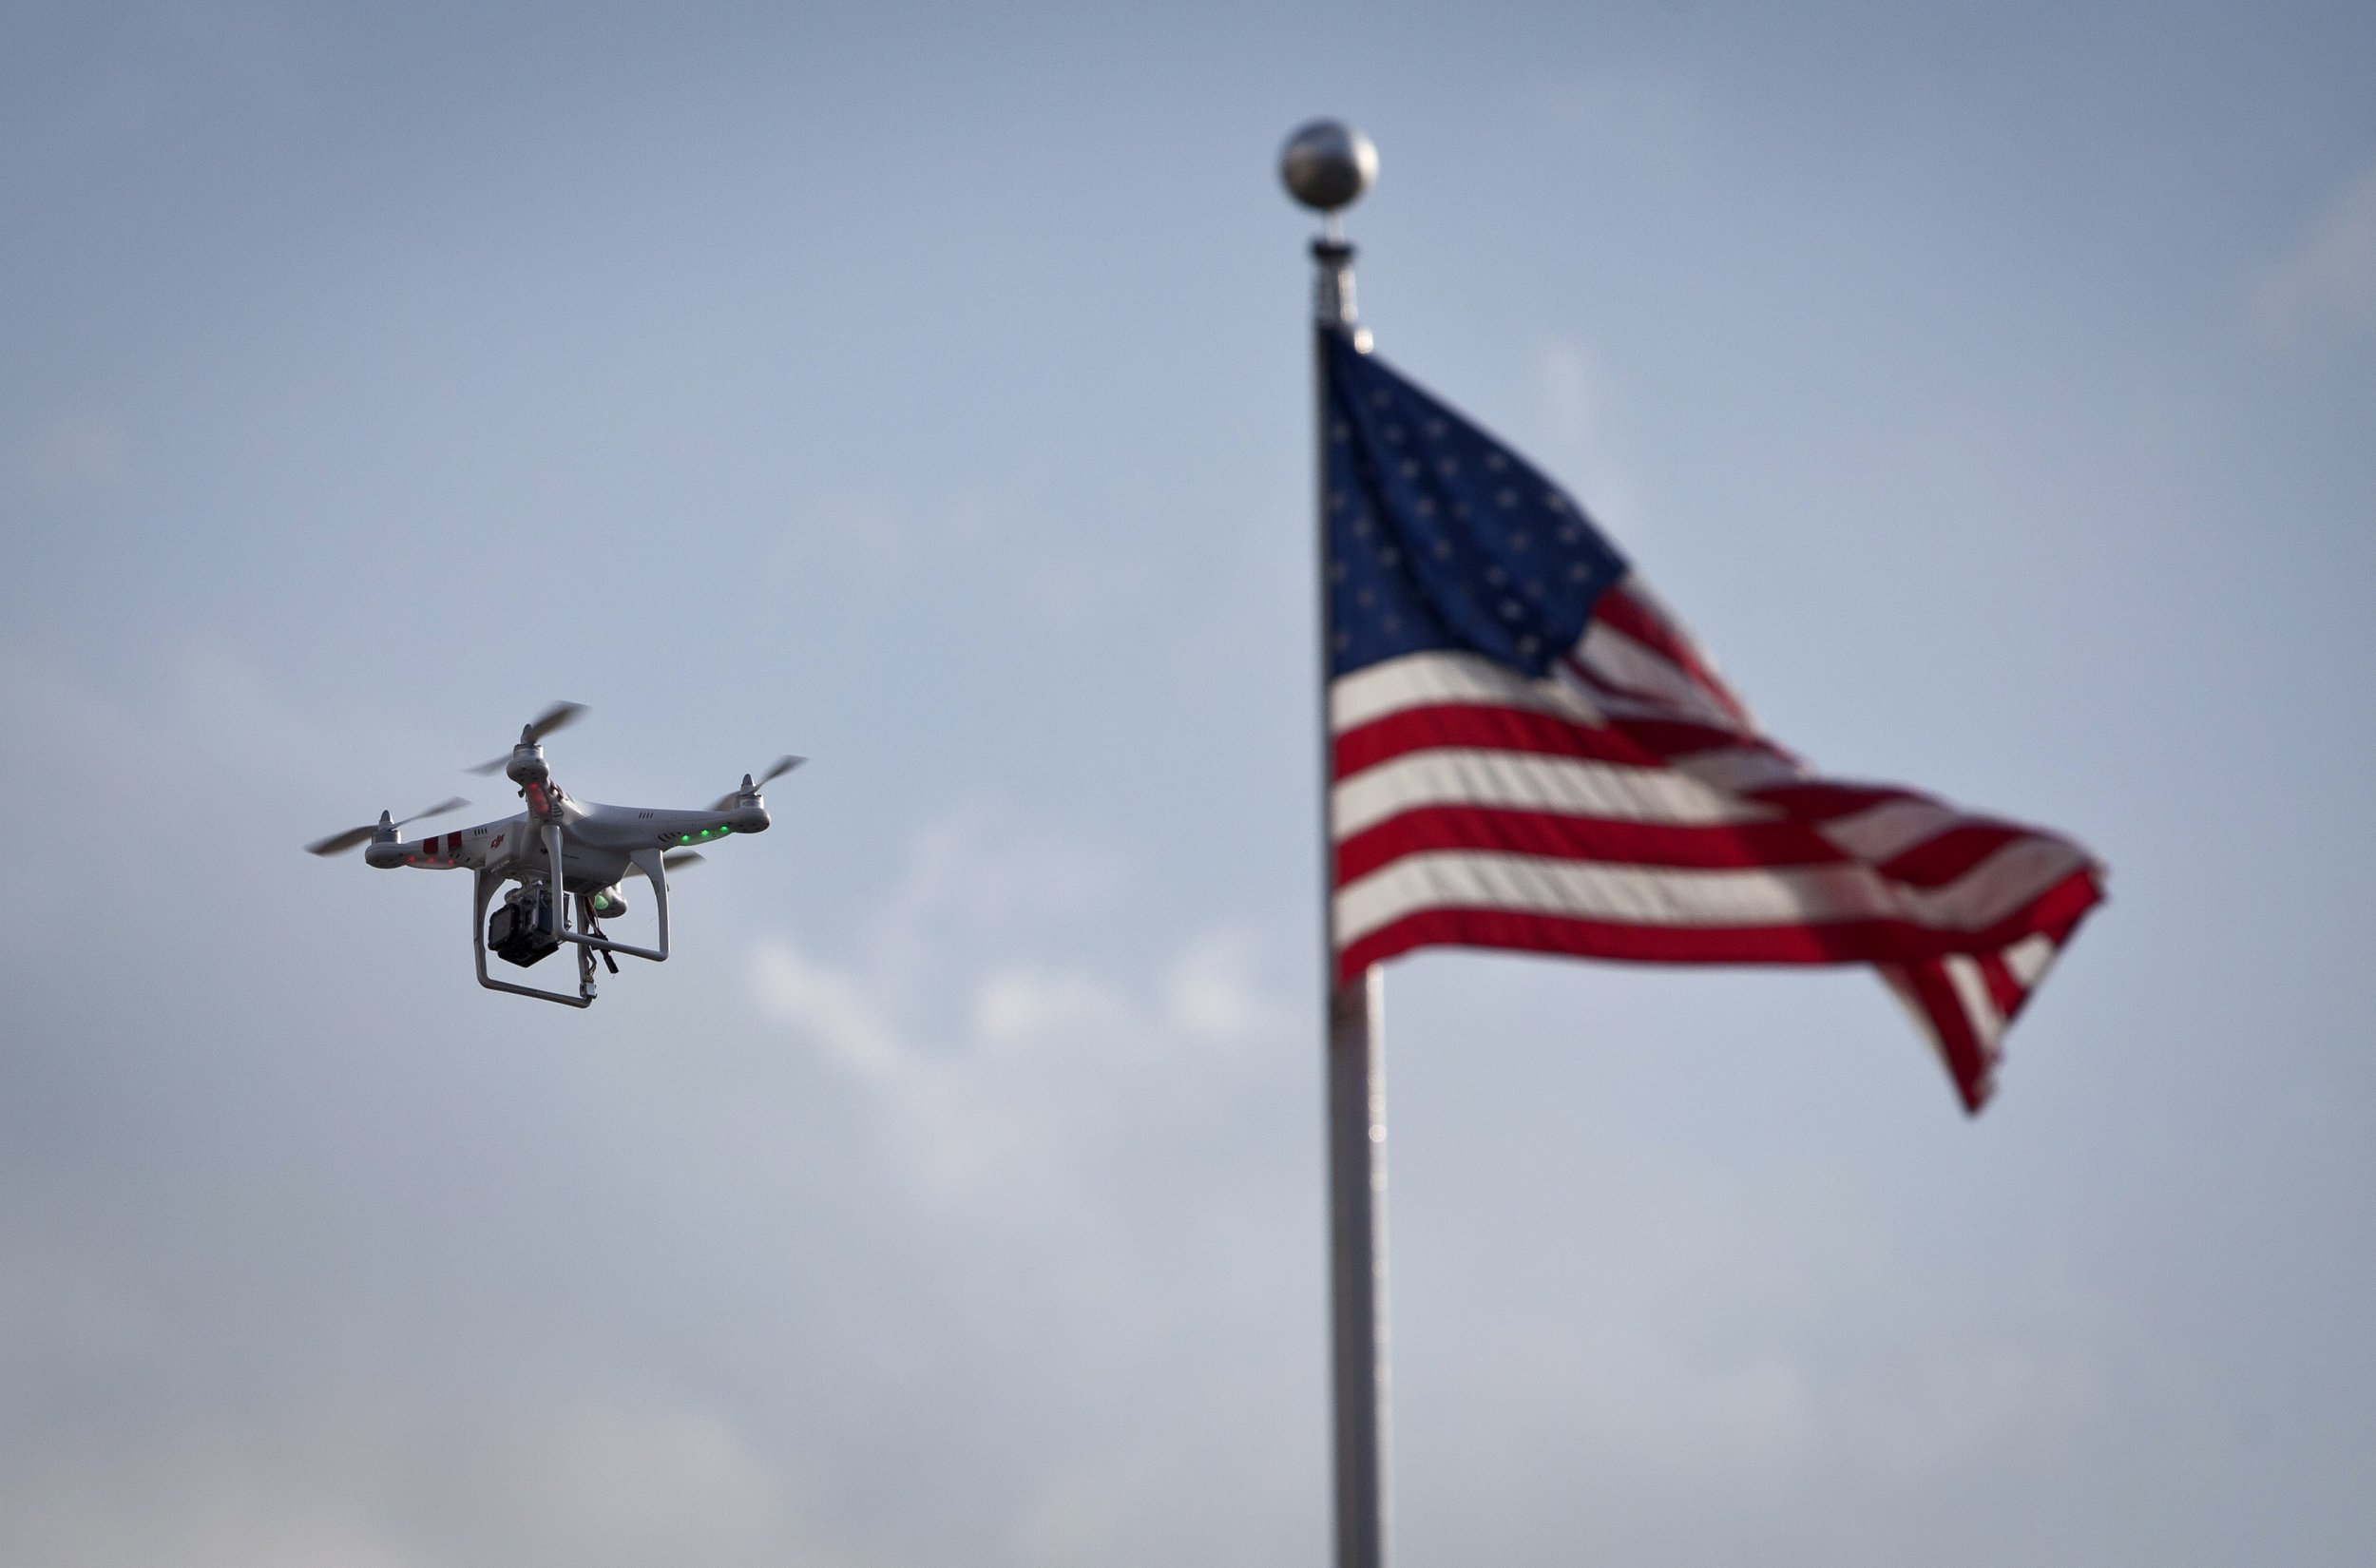 Drone Swarm' Used by Criminals to Disrupt an FBI Hostage